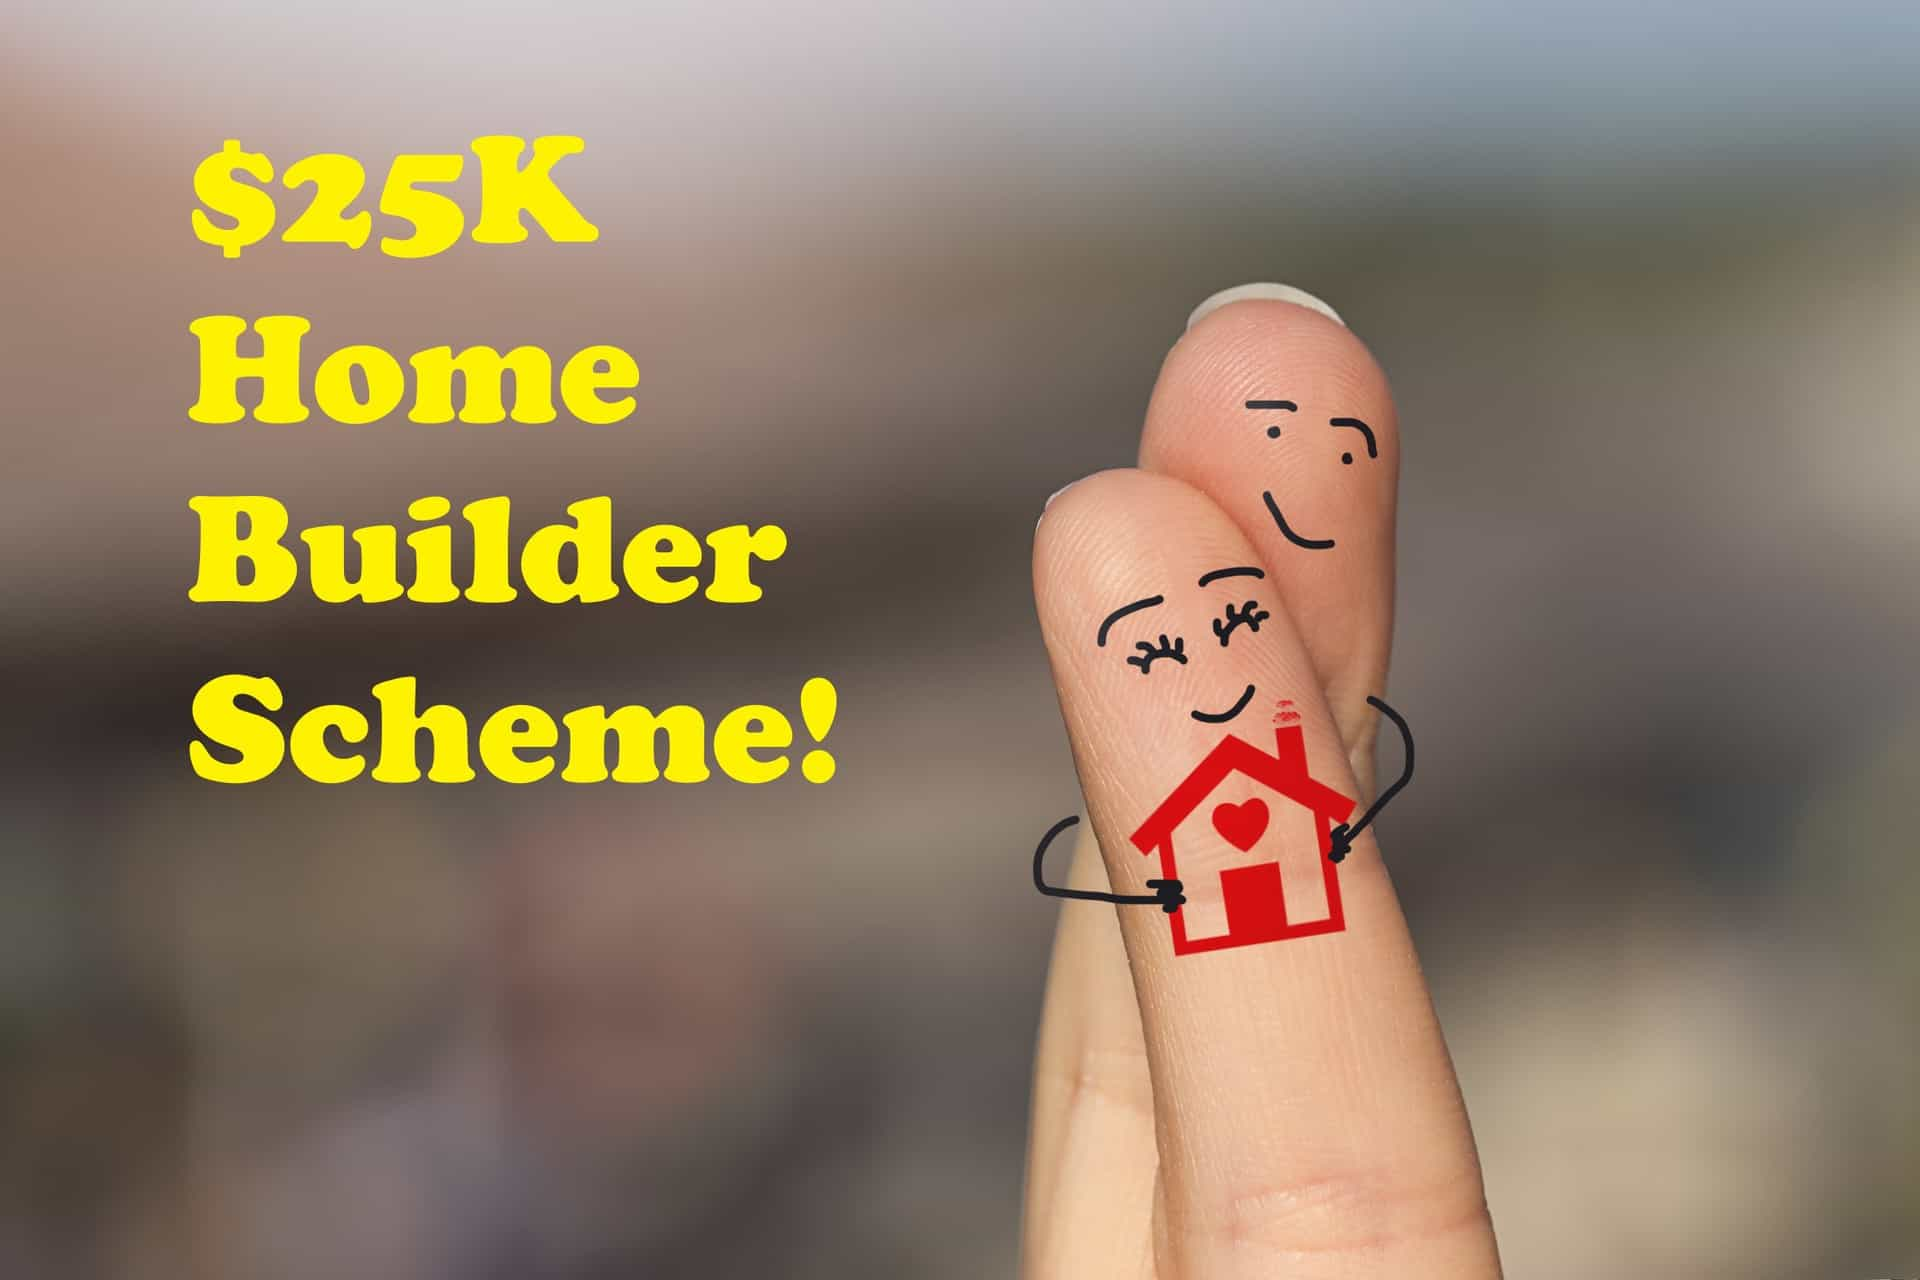 Home Builder Scheme saving young family $25000